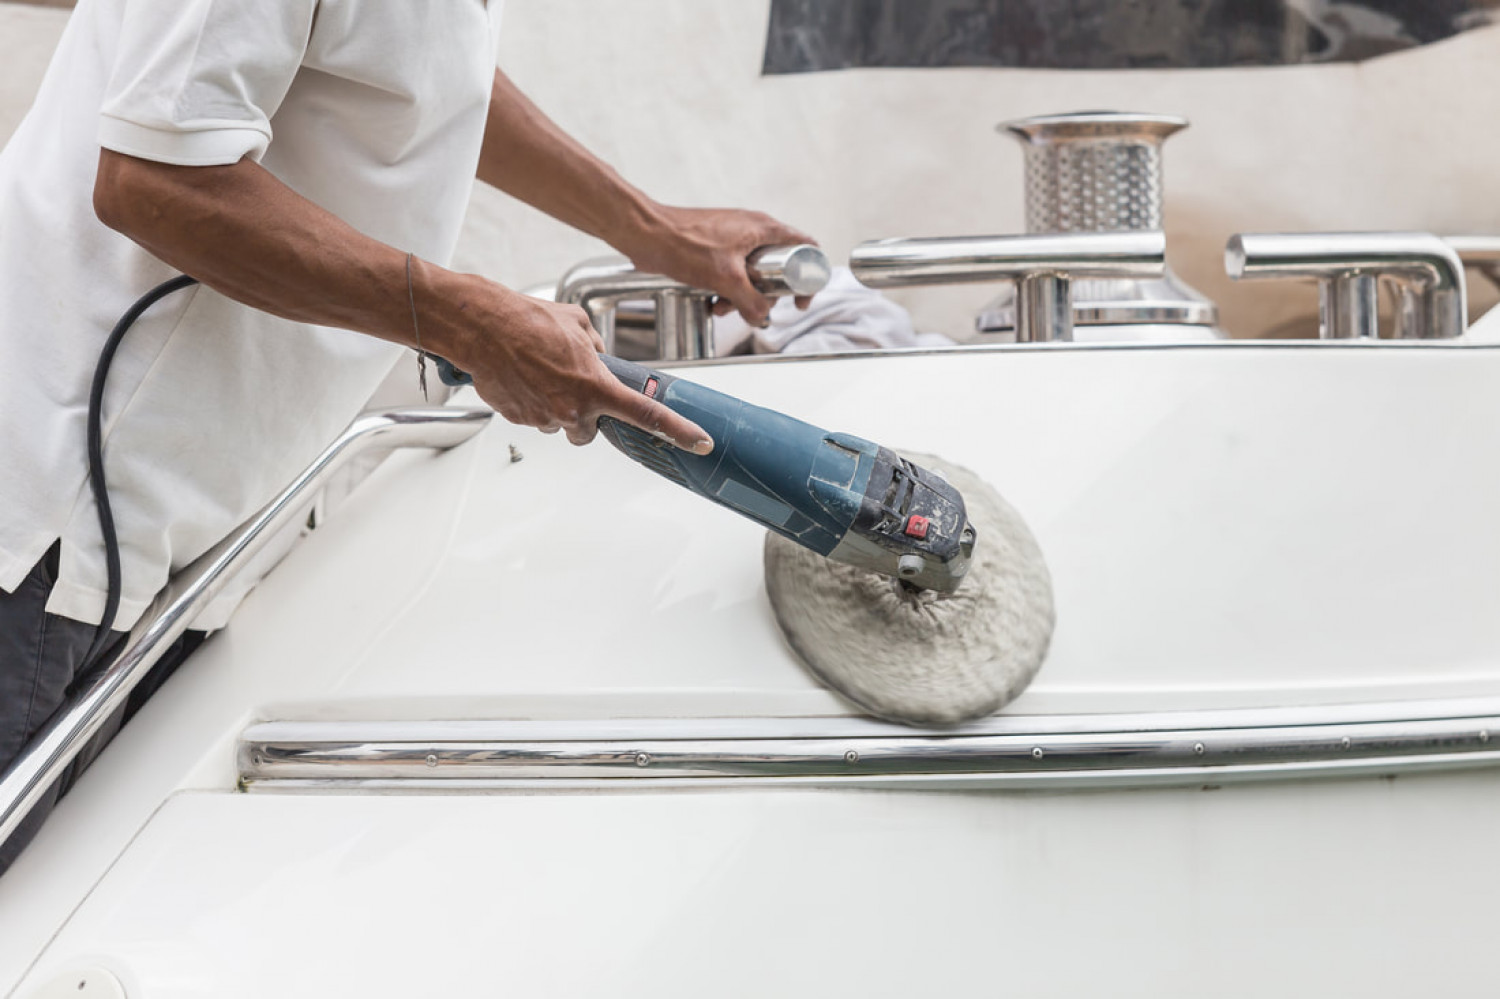 Boat Cleaning Company - Mobile Boat Detailing Clearwater, FL Infographic